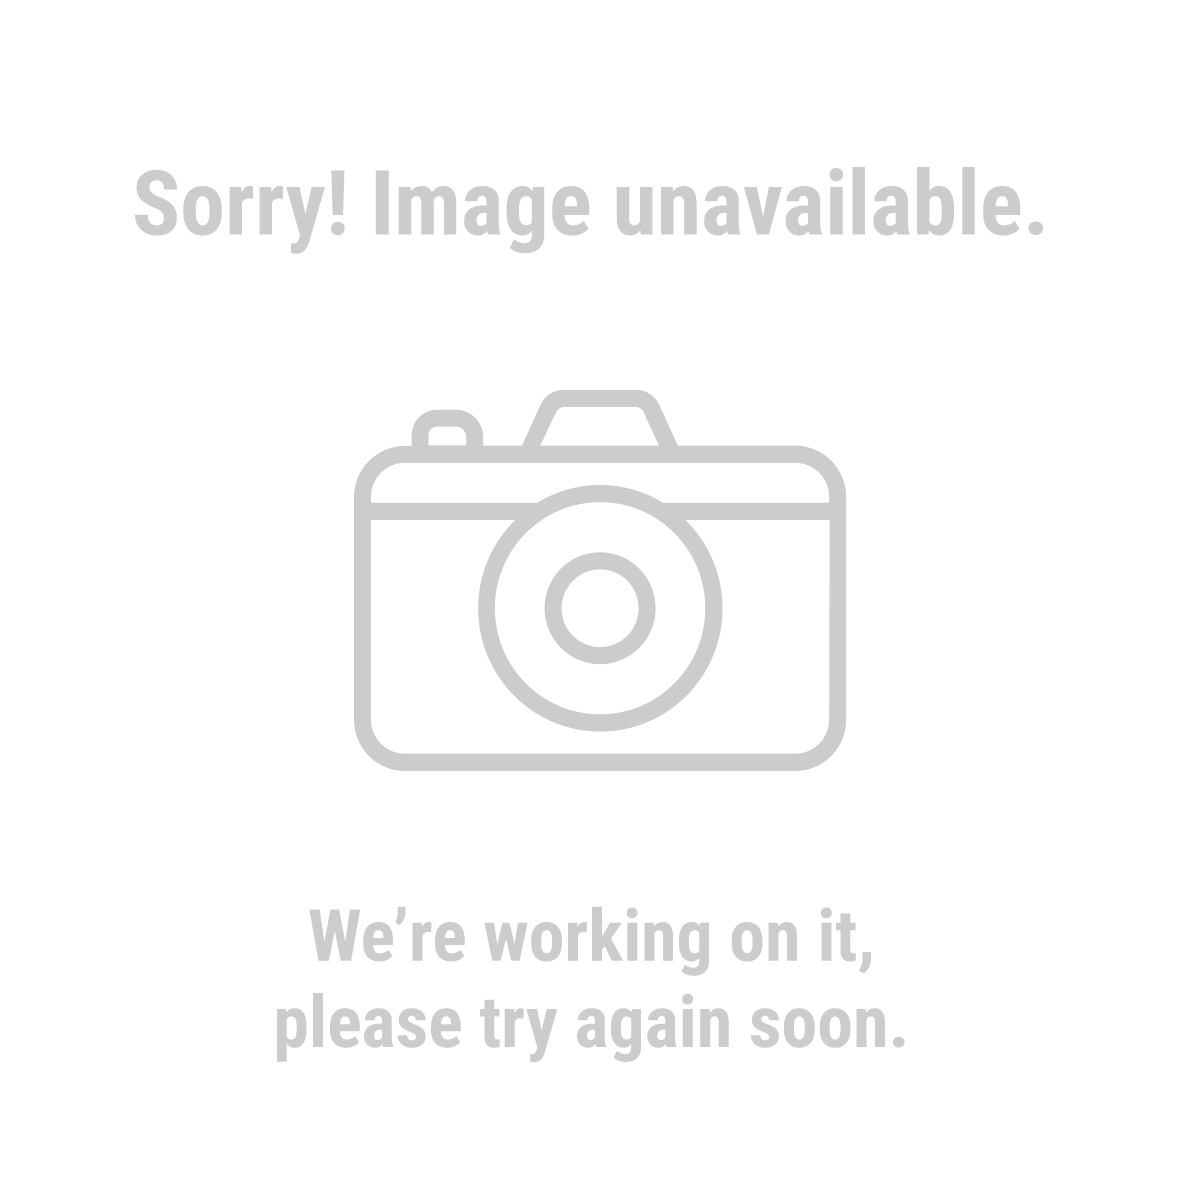 Voyager 47084 21 Pocket Heavy Duty Tool Belt